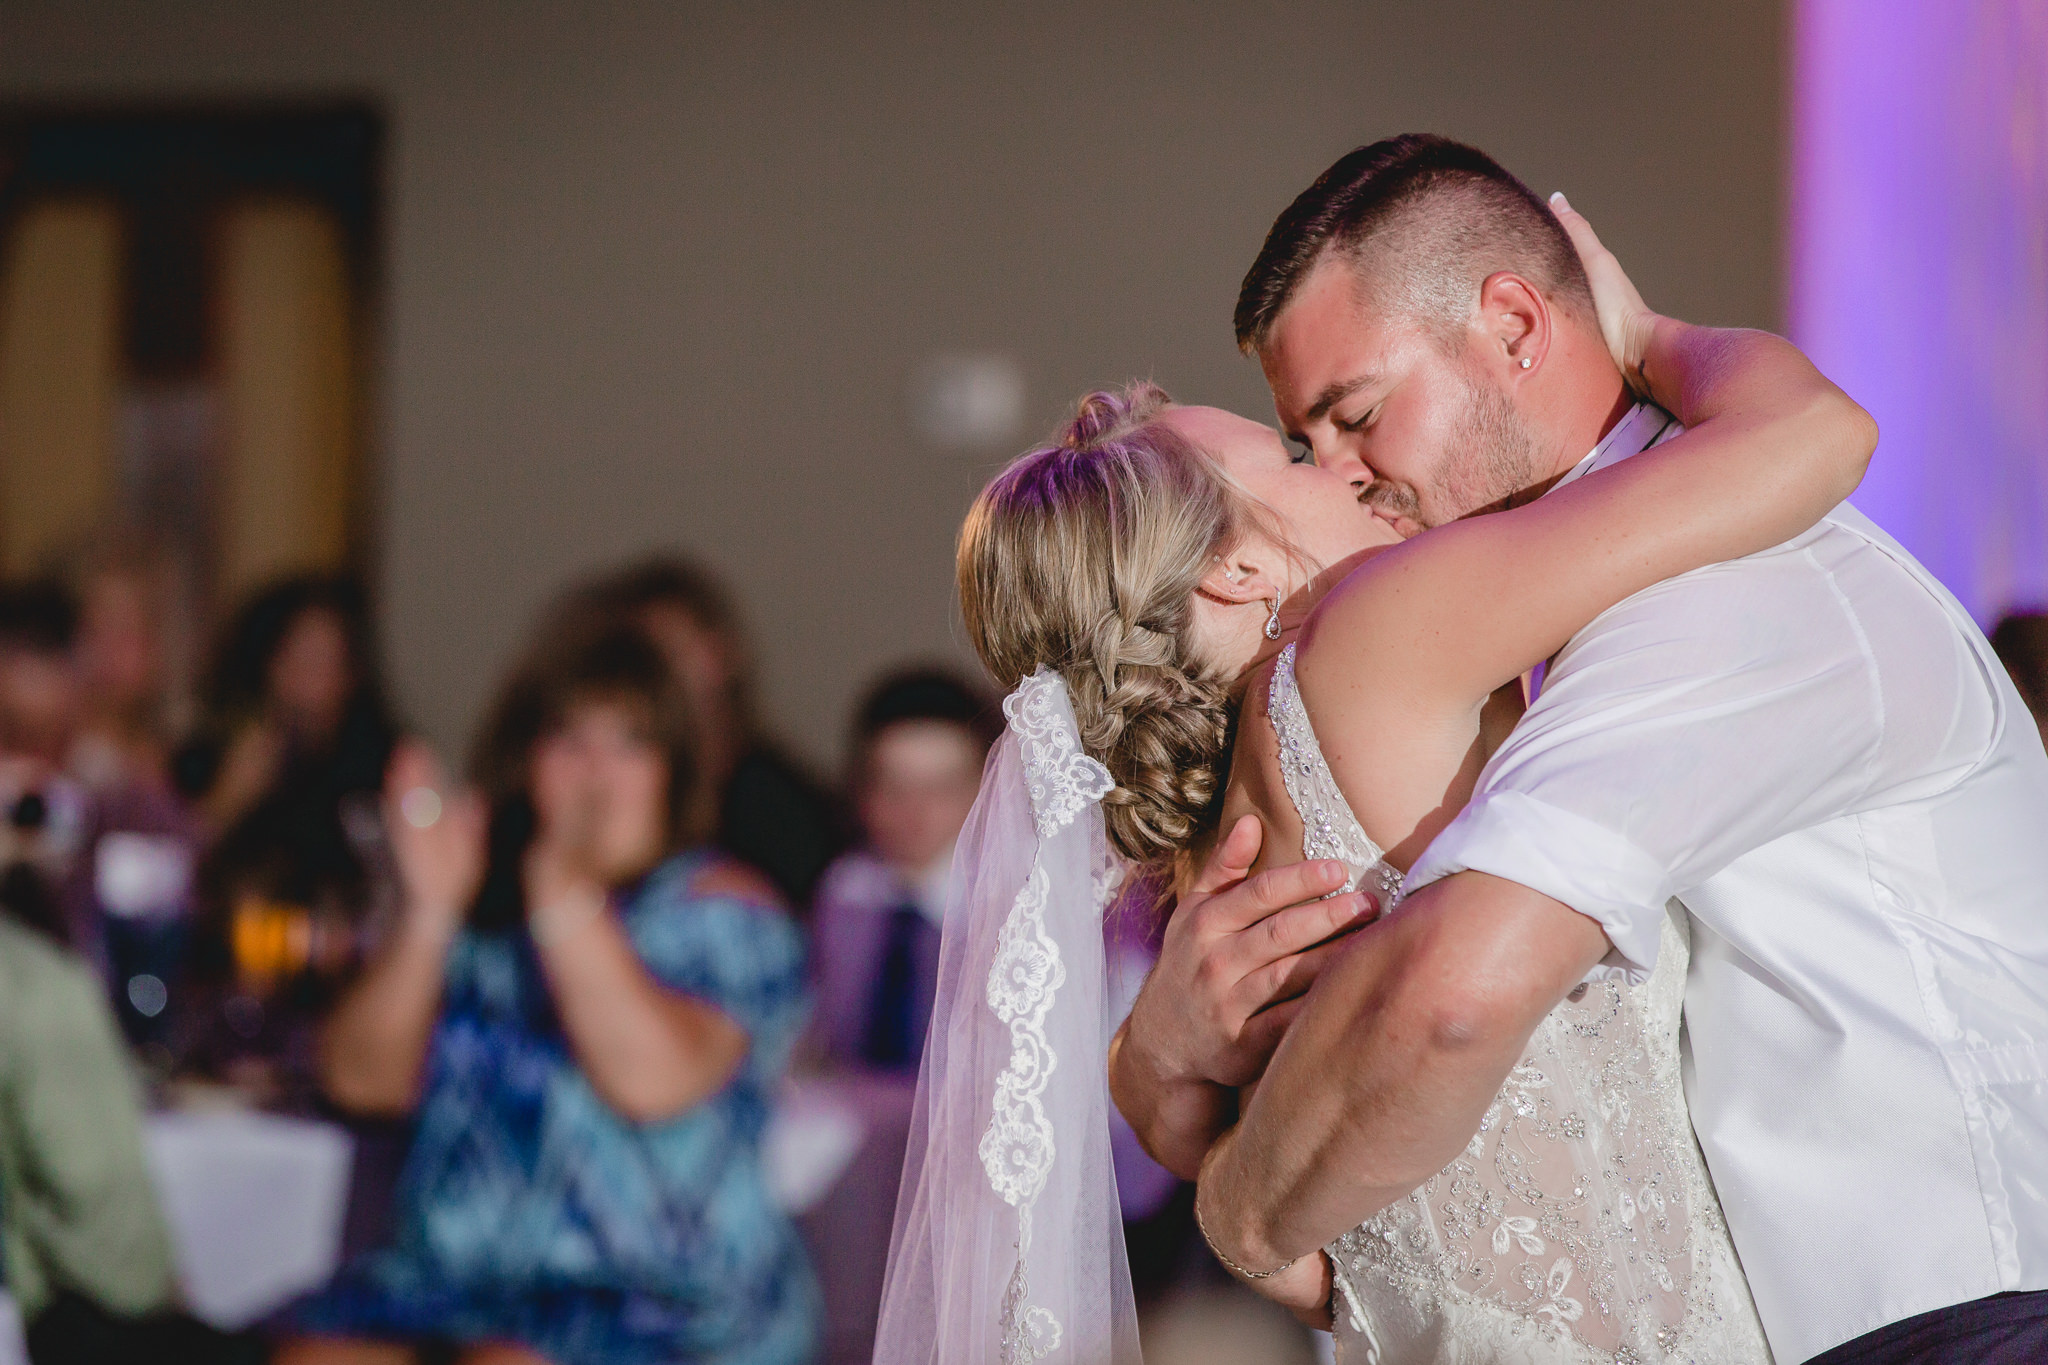 Bride and groom kiss on the dance floor at the Fez wedding reception